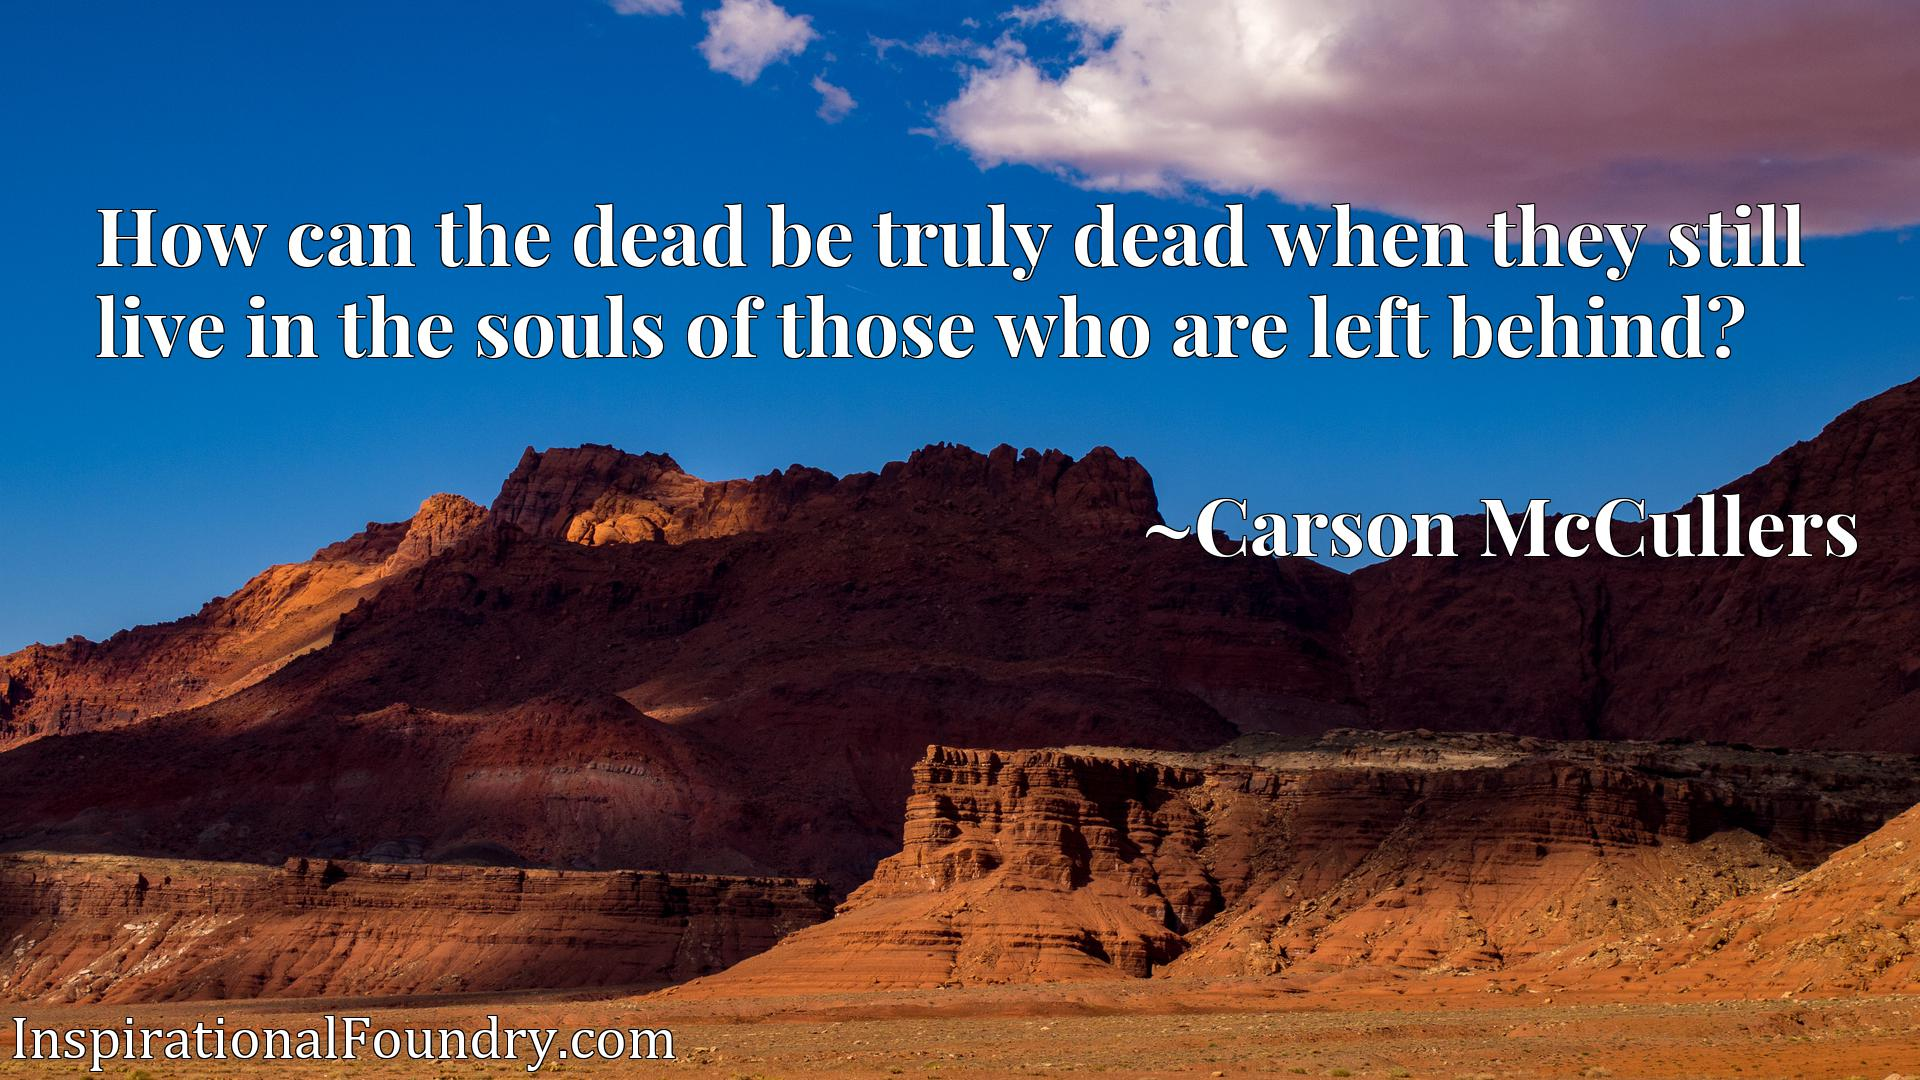 How can the dead be truly dead when they still live in the souls of those who are left behind?